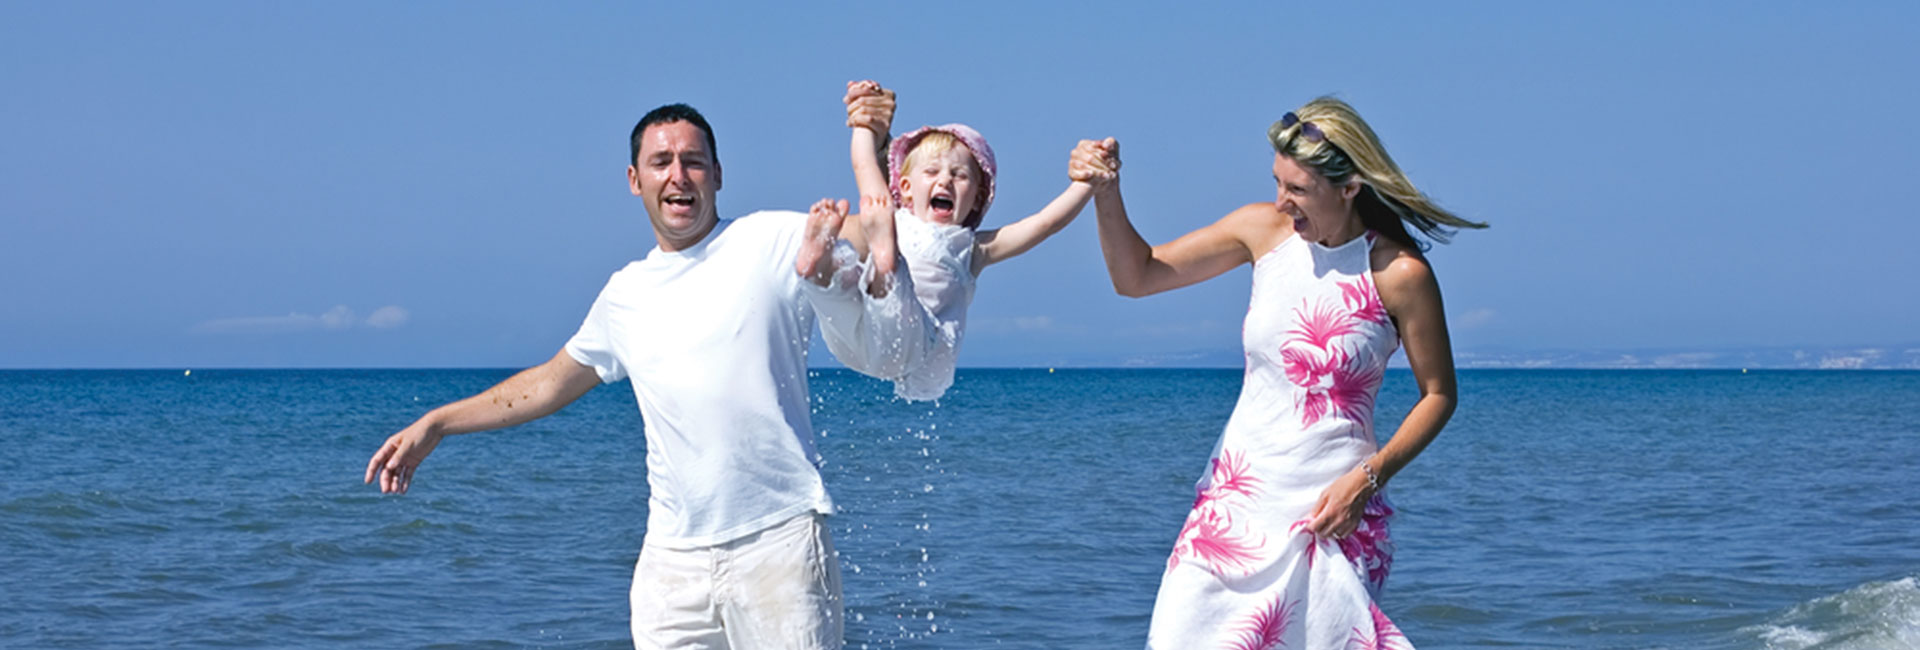 Blue Water High Cast special offers | cynthiana beach hotel